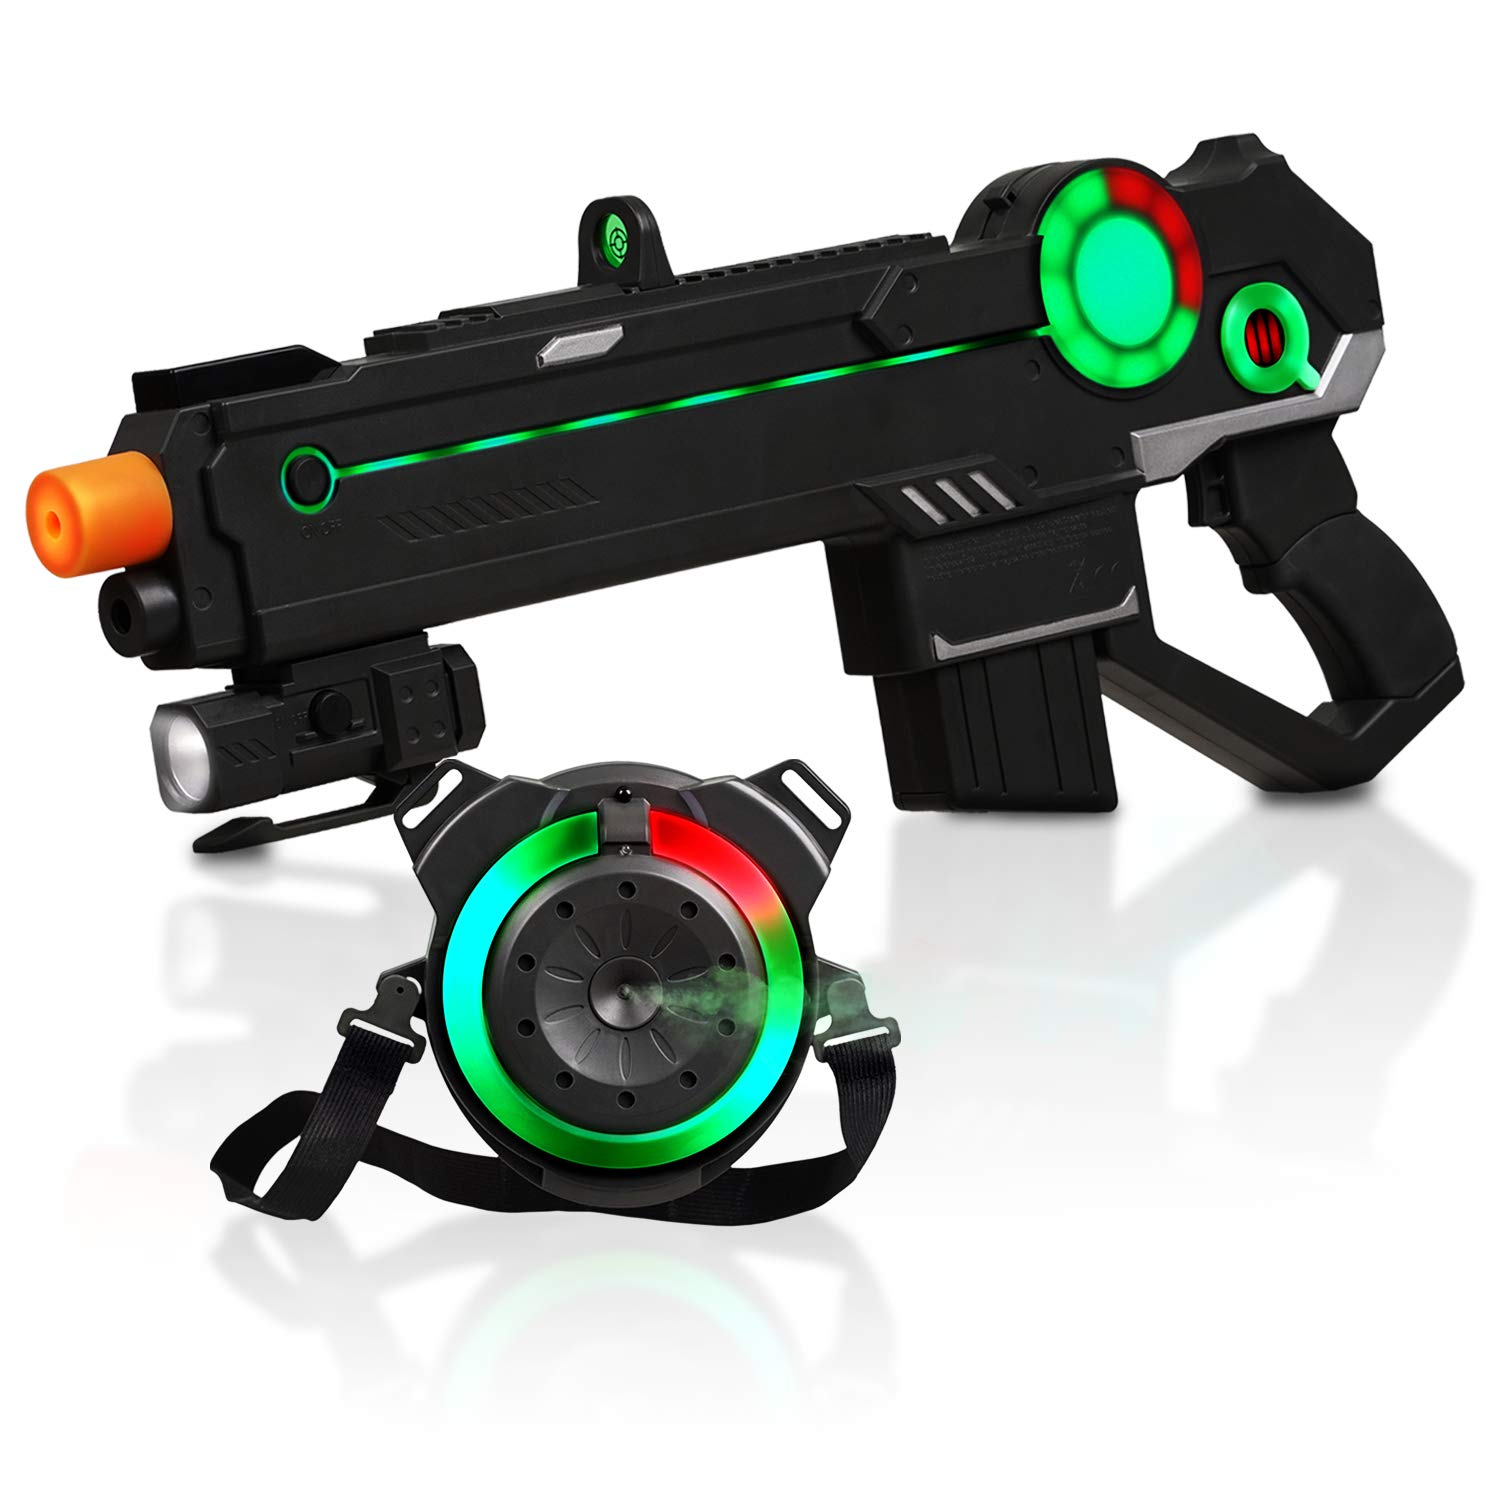 Ranger 1 Laser Tag Reality Gaming Kit with 4 Guns, 4 Vests, 225ft Shooting Range, Unique LED Heads-Up Display, World-First 100% Gun/Vest Synchronization, Smoke-Like Water Vapor Emitter, Built-To-Last-